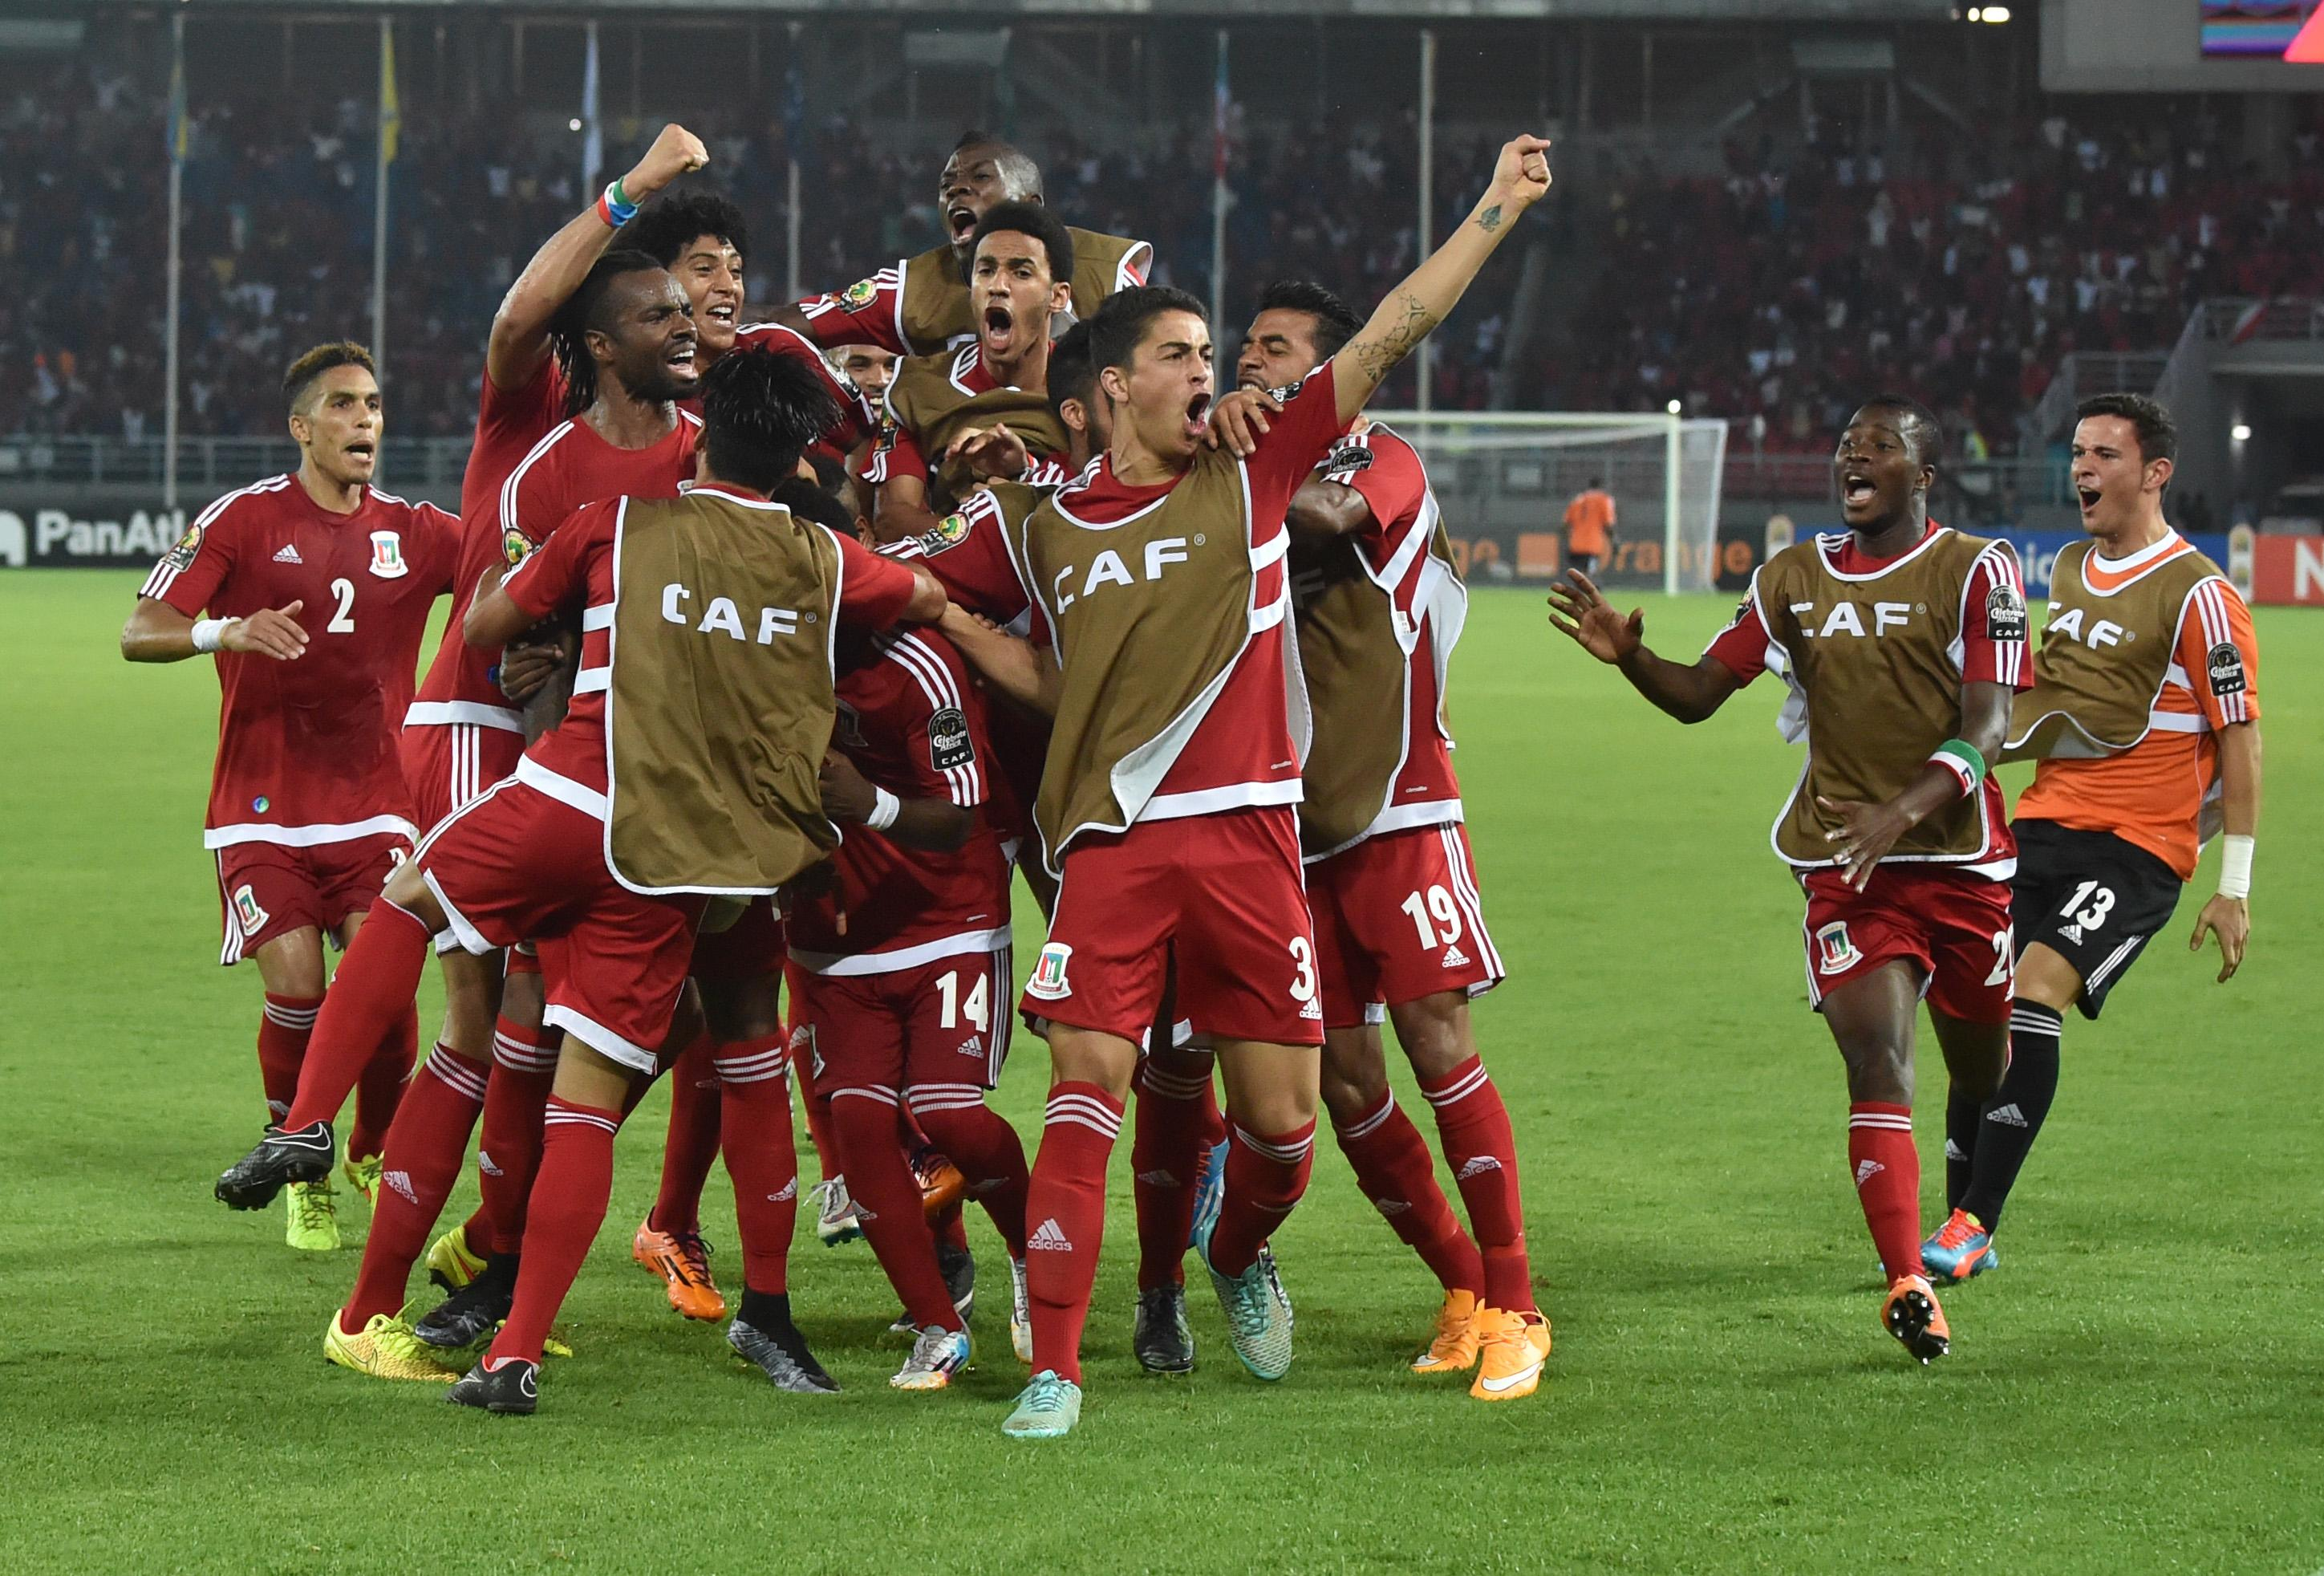 Unfancied hosts, Congo advance in Cup of Nations